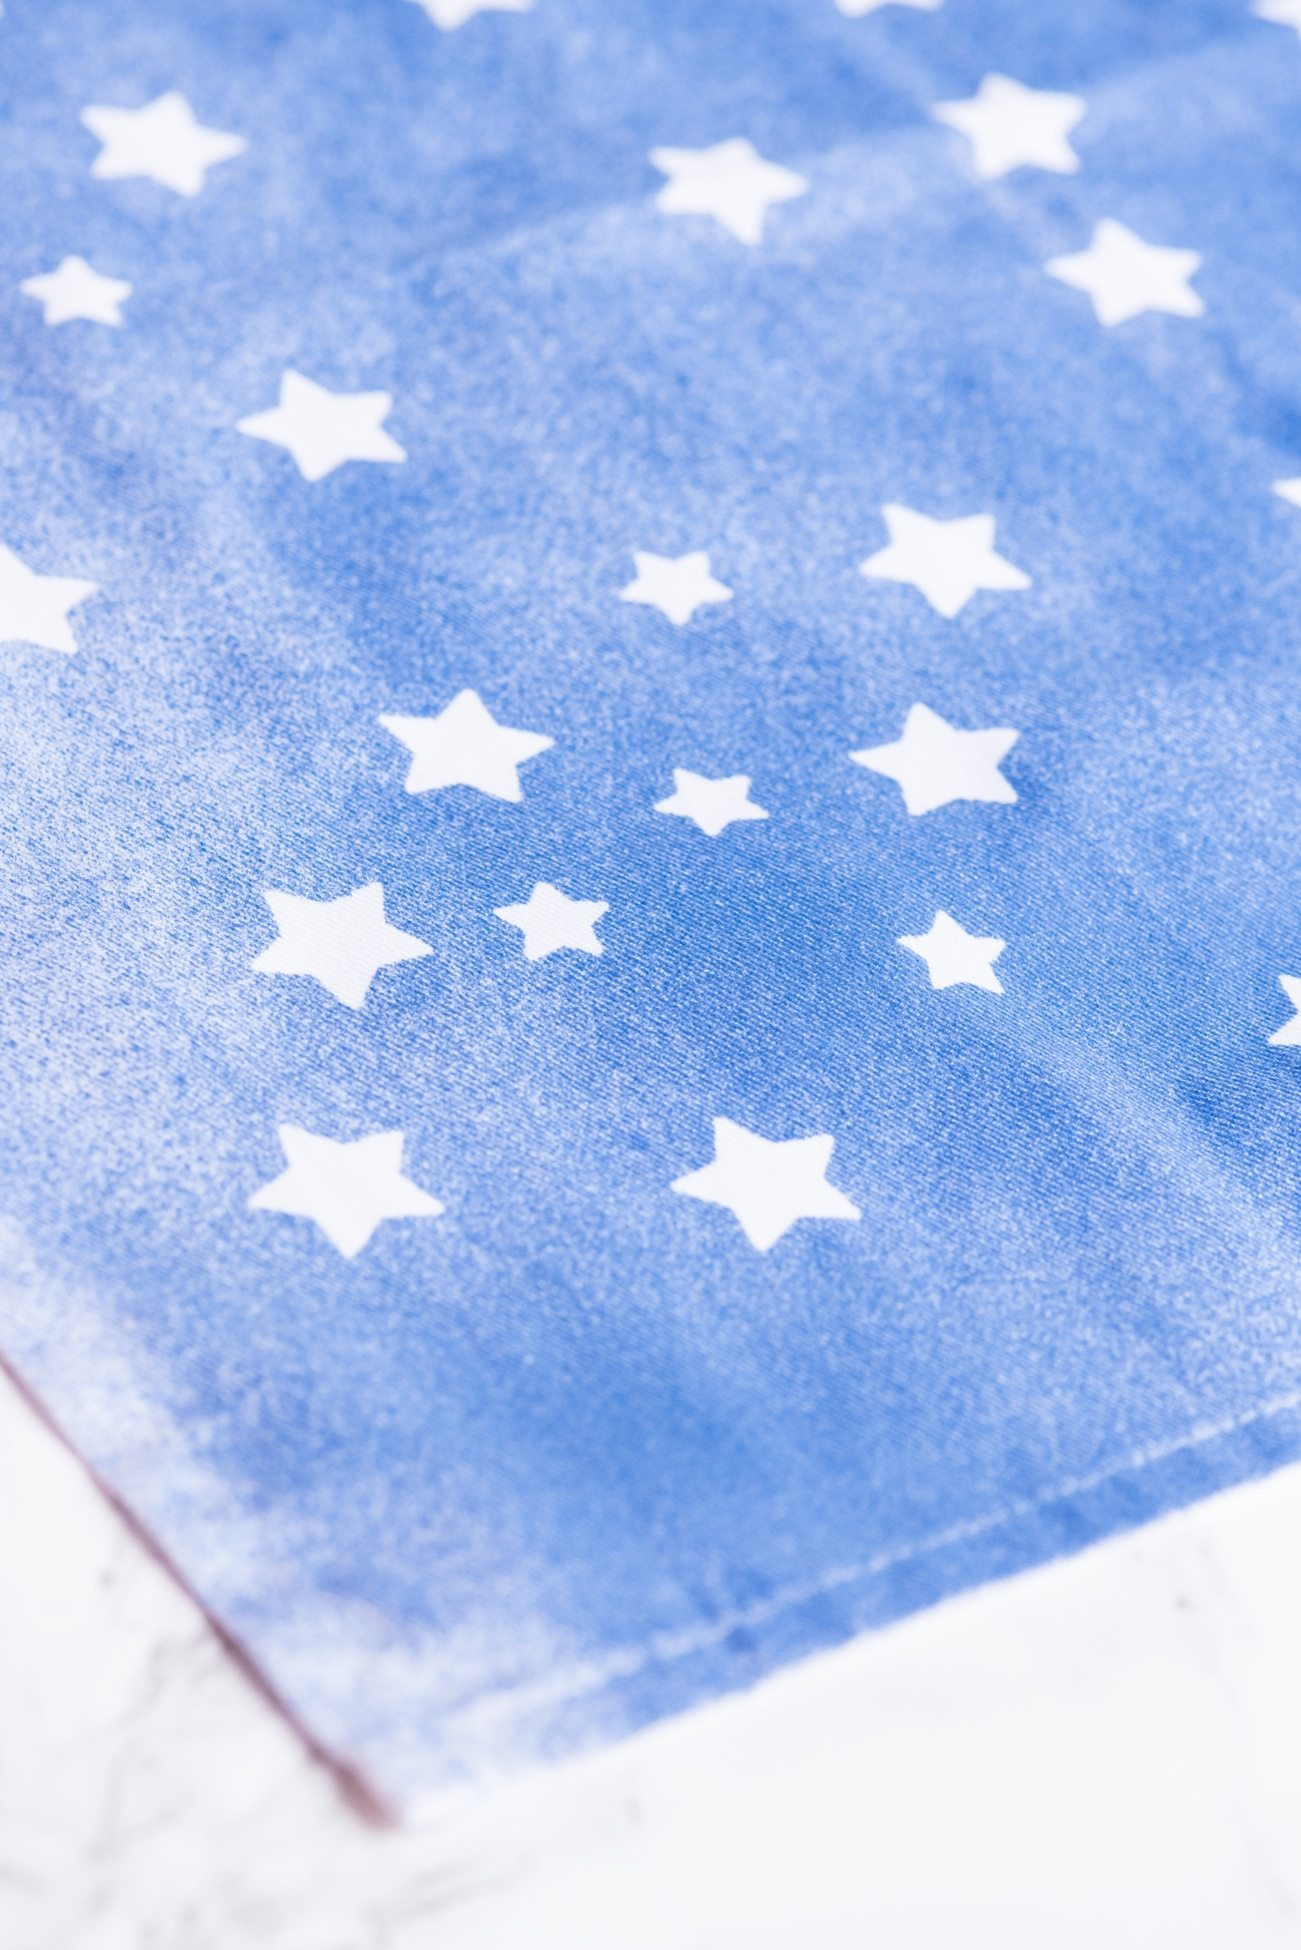 DIY Star Spangled Napkins | 4th of July craft ideas, 4th of July recipes, entertaining tips and party ideas from @cydconverse